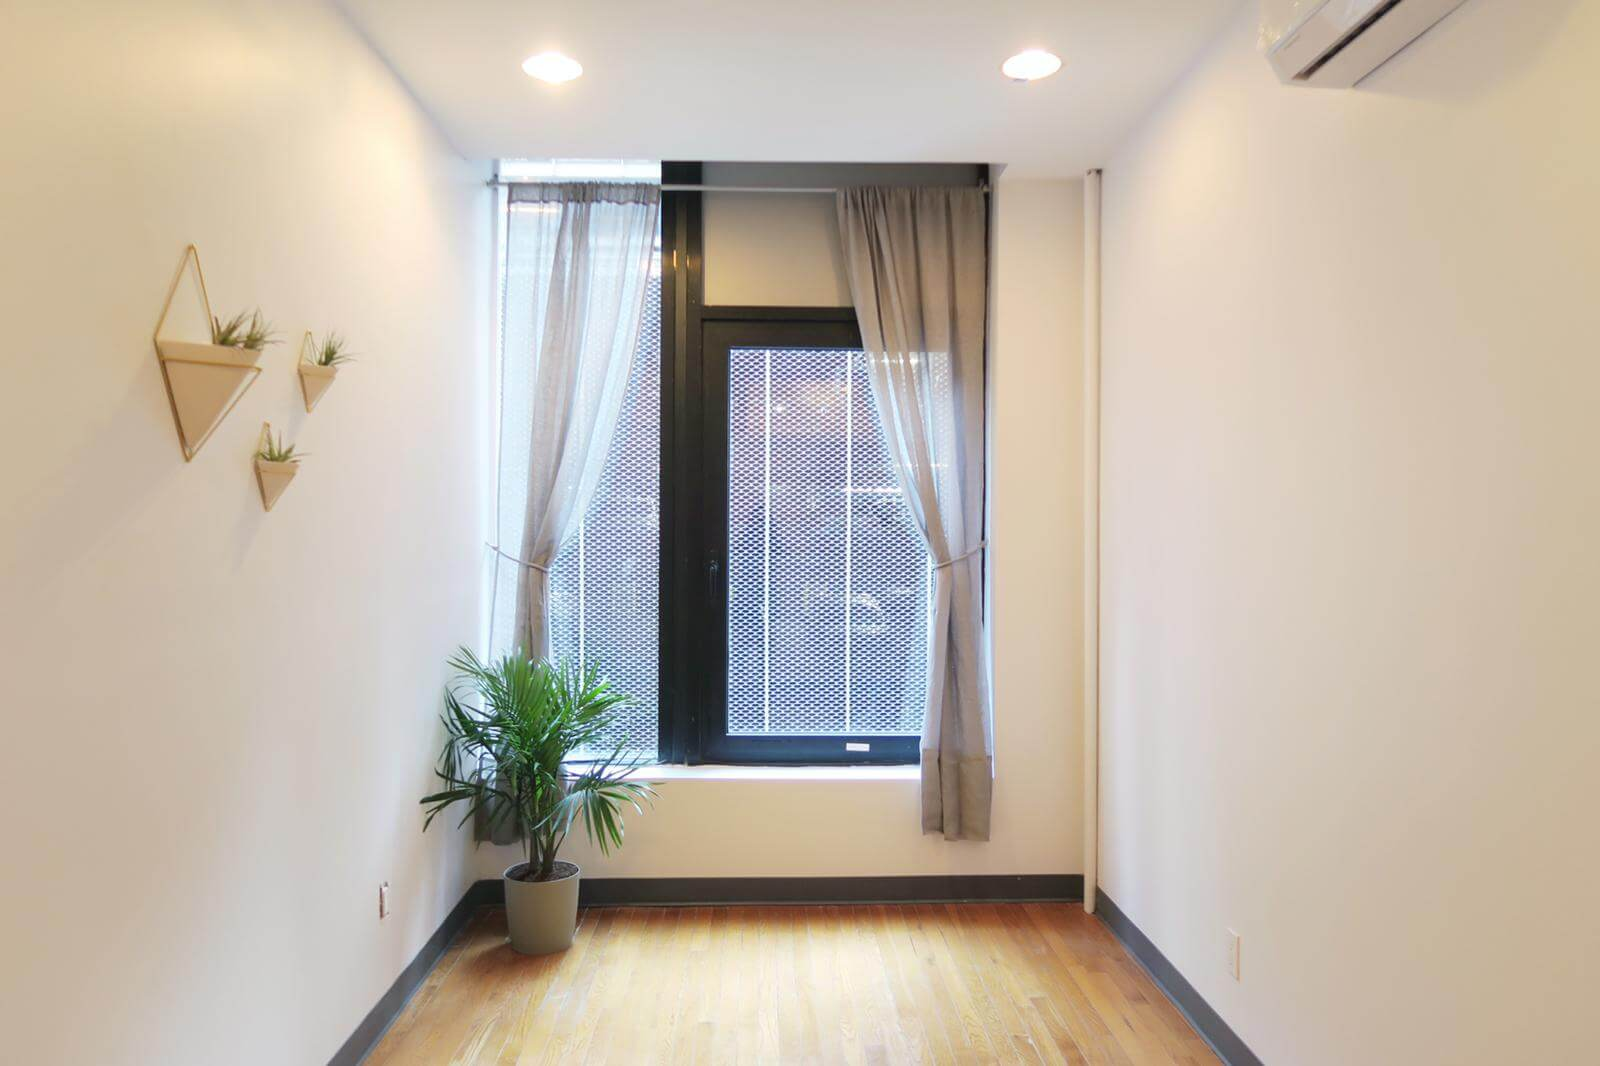 Multiple Rooms for Rent in a Full-Floor Beautiful Midtown West Holistic Wellness Space - Lots of Natural Light, Massage Table & Storage in EVERY Room!